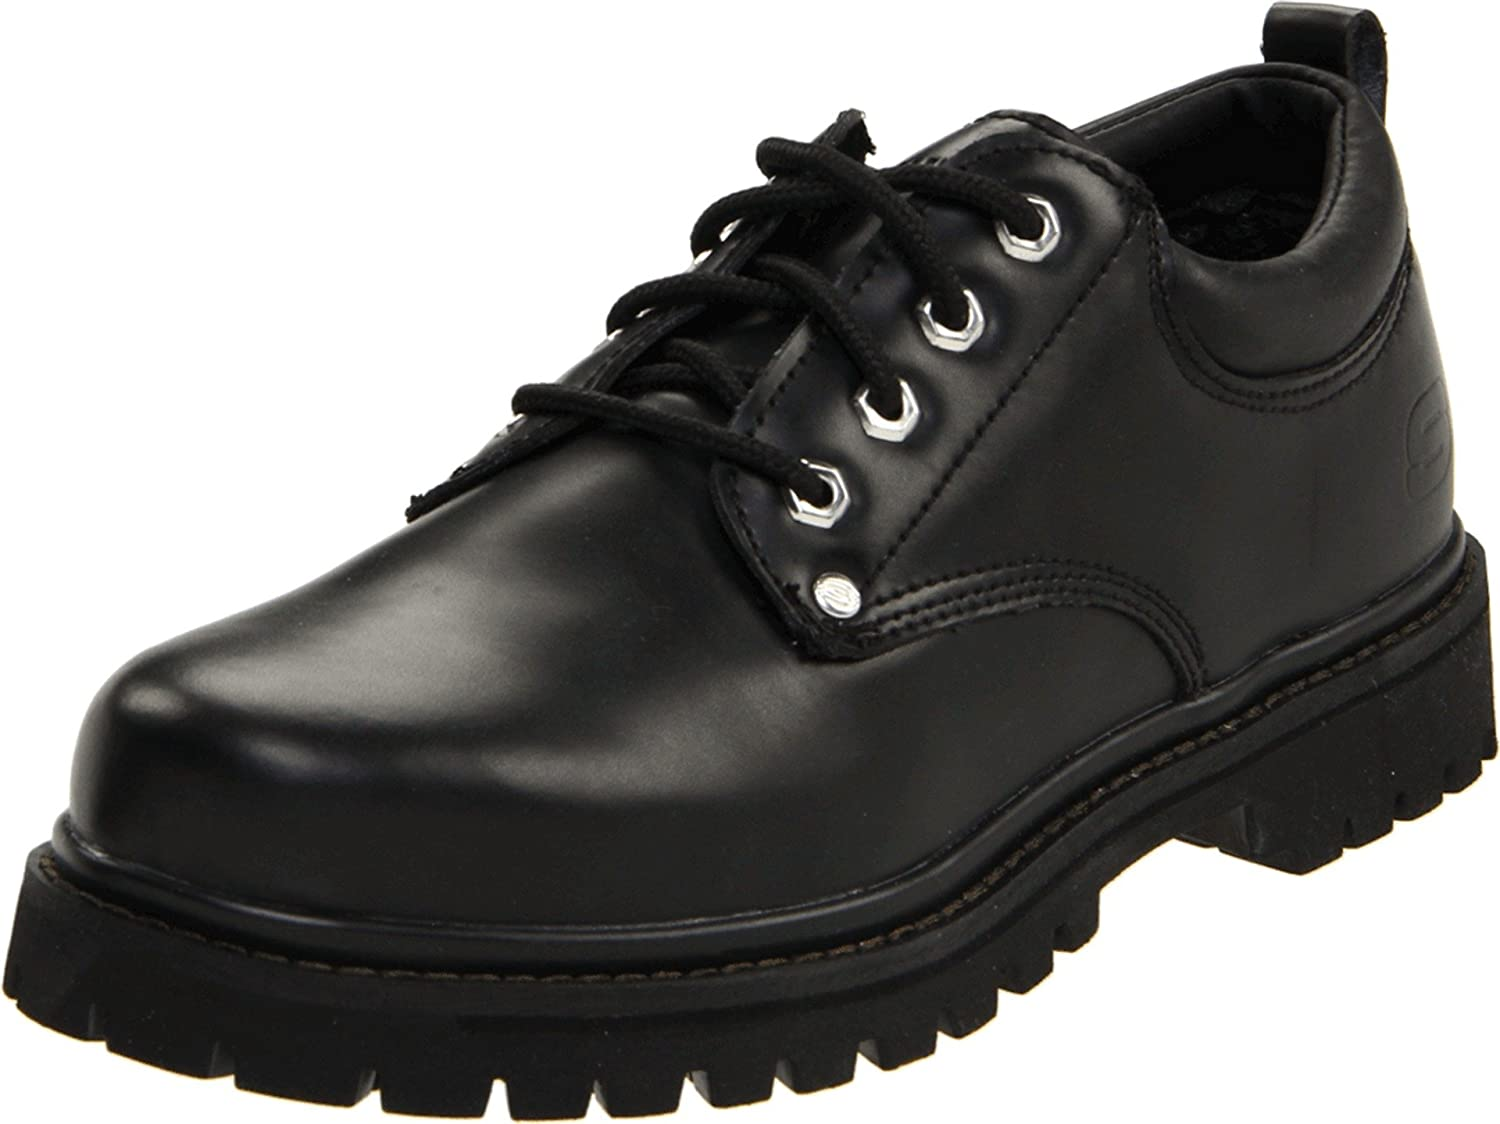 Skechers Stivali Uomo Amazon b7VWPDy13V